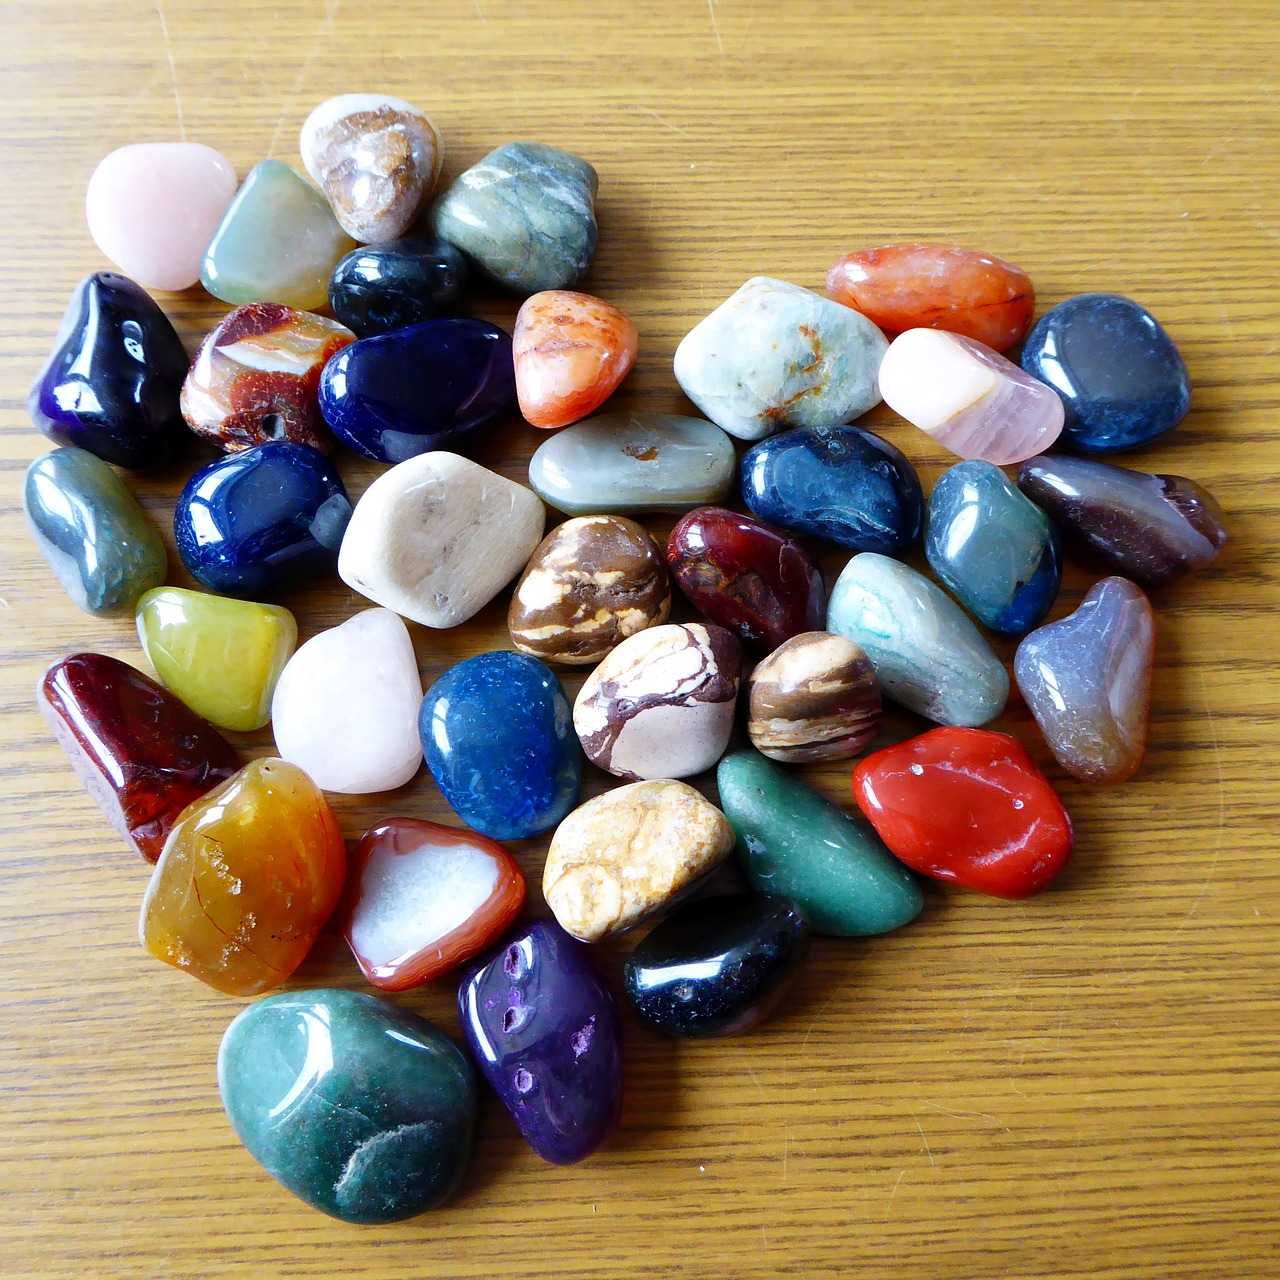 GEMS OF WISDOM – SEEKING THE SACRED